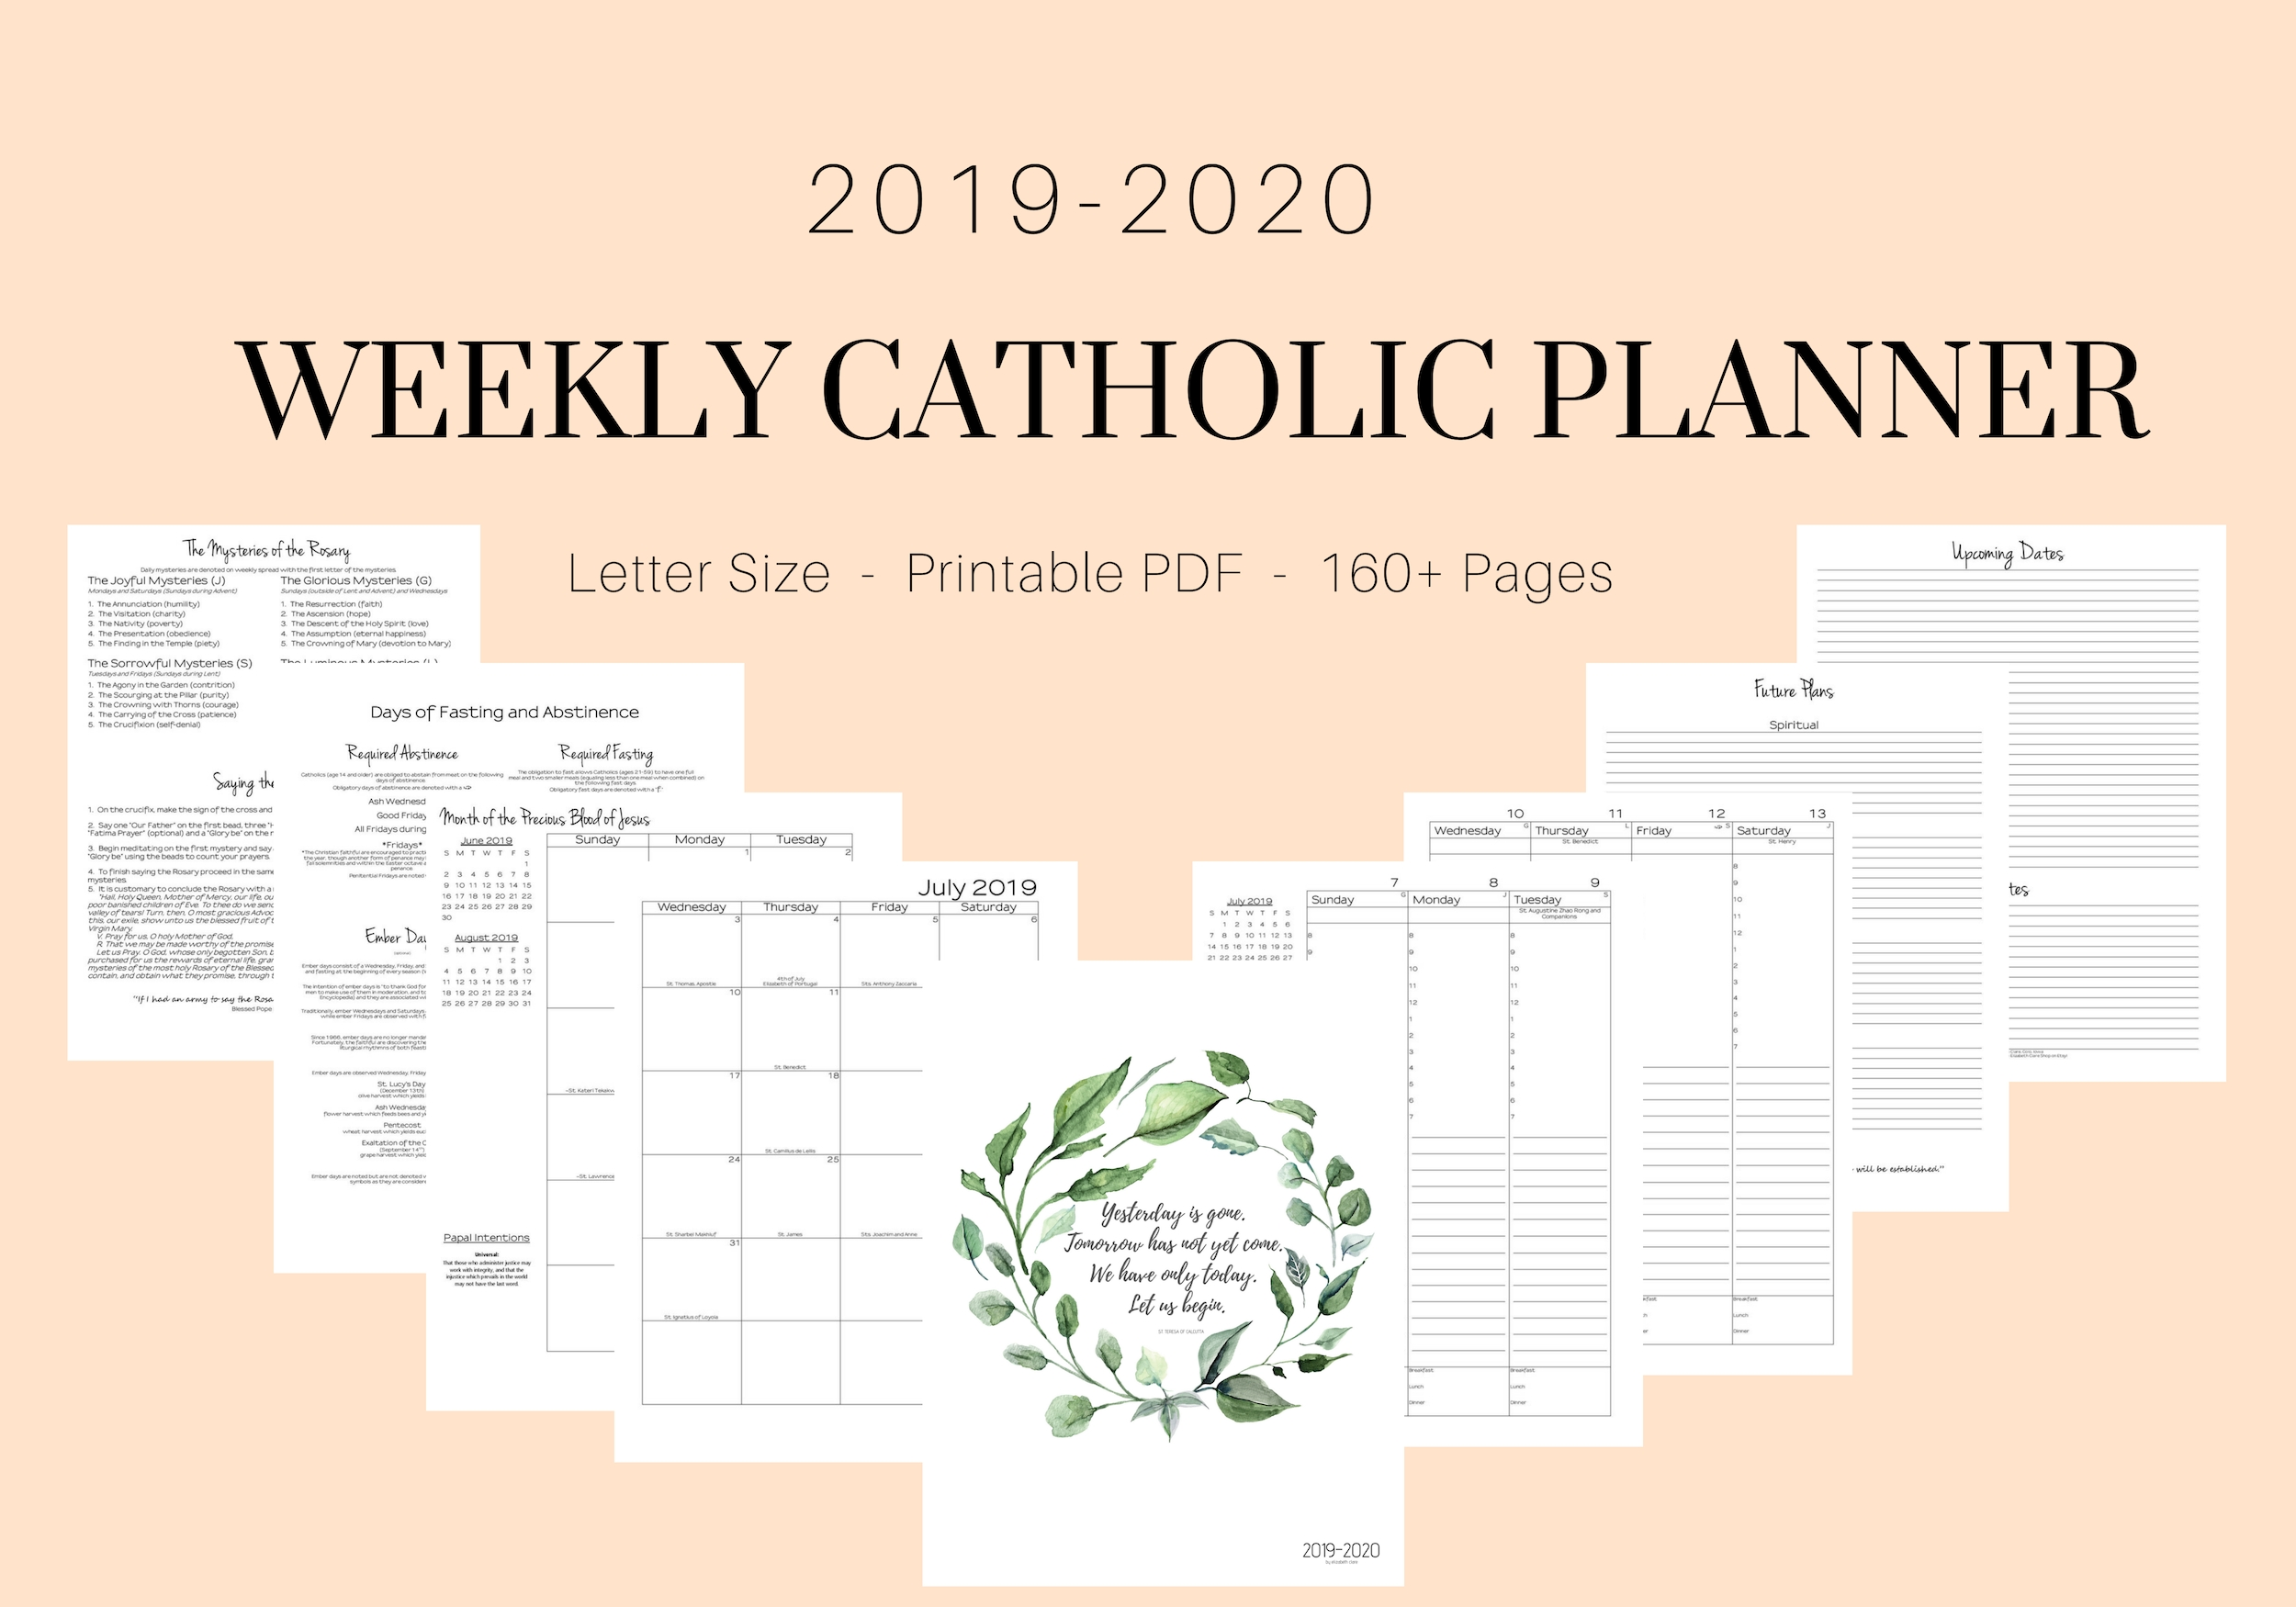 2019-2020 Catholic Weekly Planner for Liturgical Calendar 2020 Catholic Printable